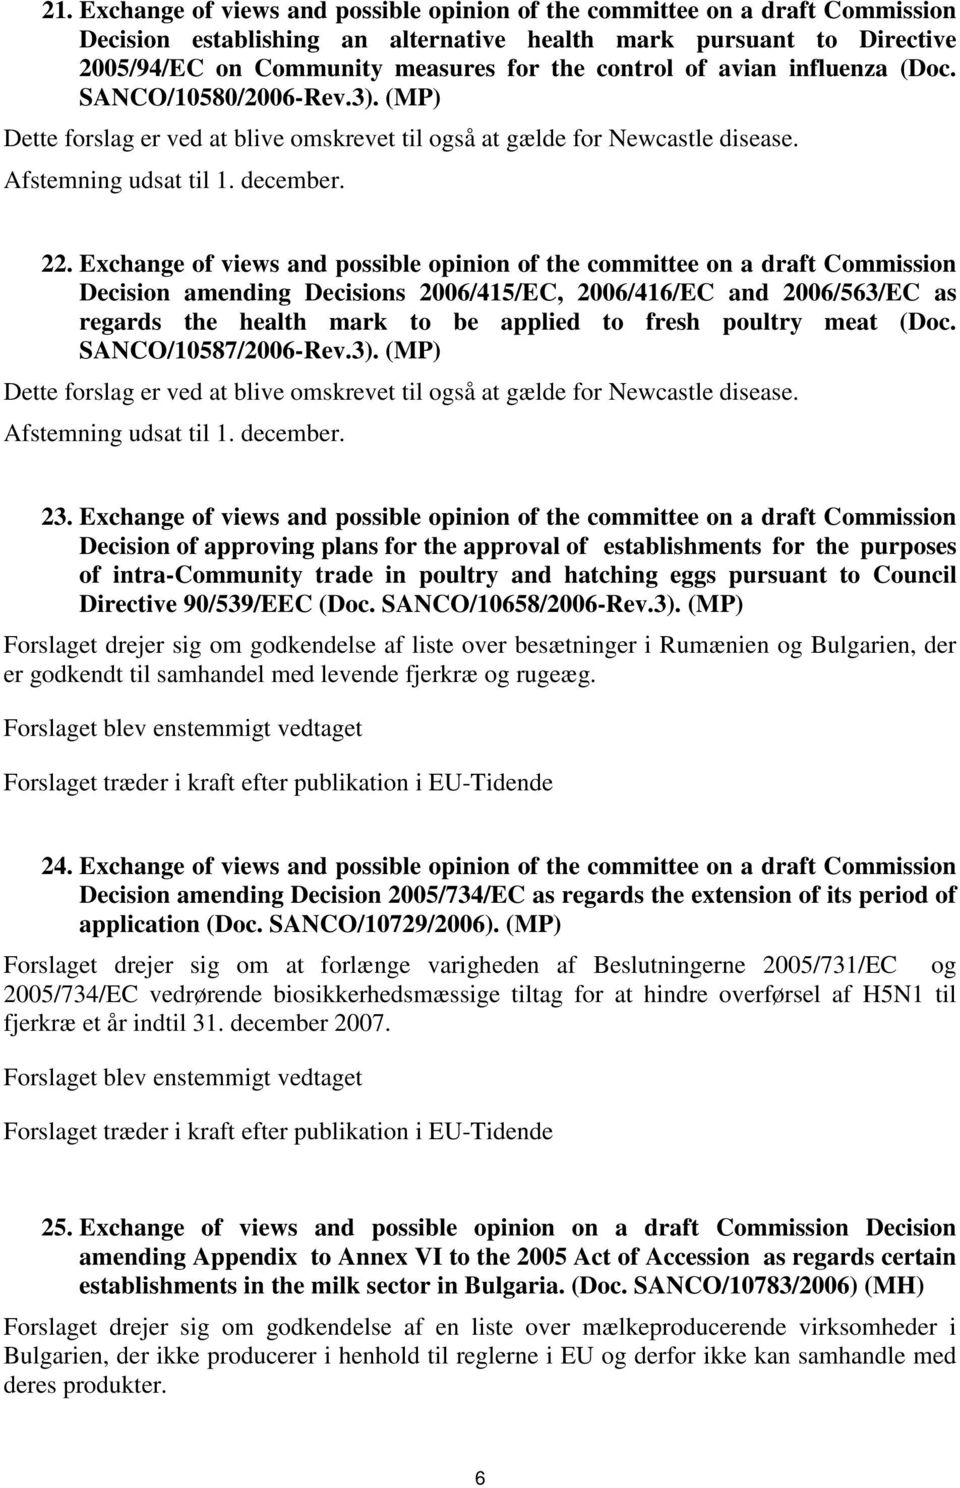 Exchange of views and possible opinion of the committee on a draft Commission Decision amending Decisions 2006/415/EC, 2006/416/EC and 2006/563/EC as regards the health mark to be applied to fresh